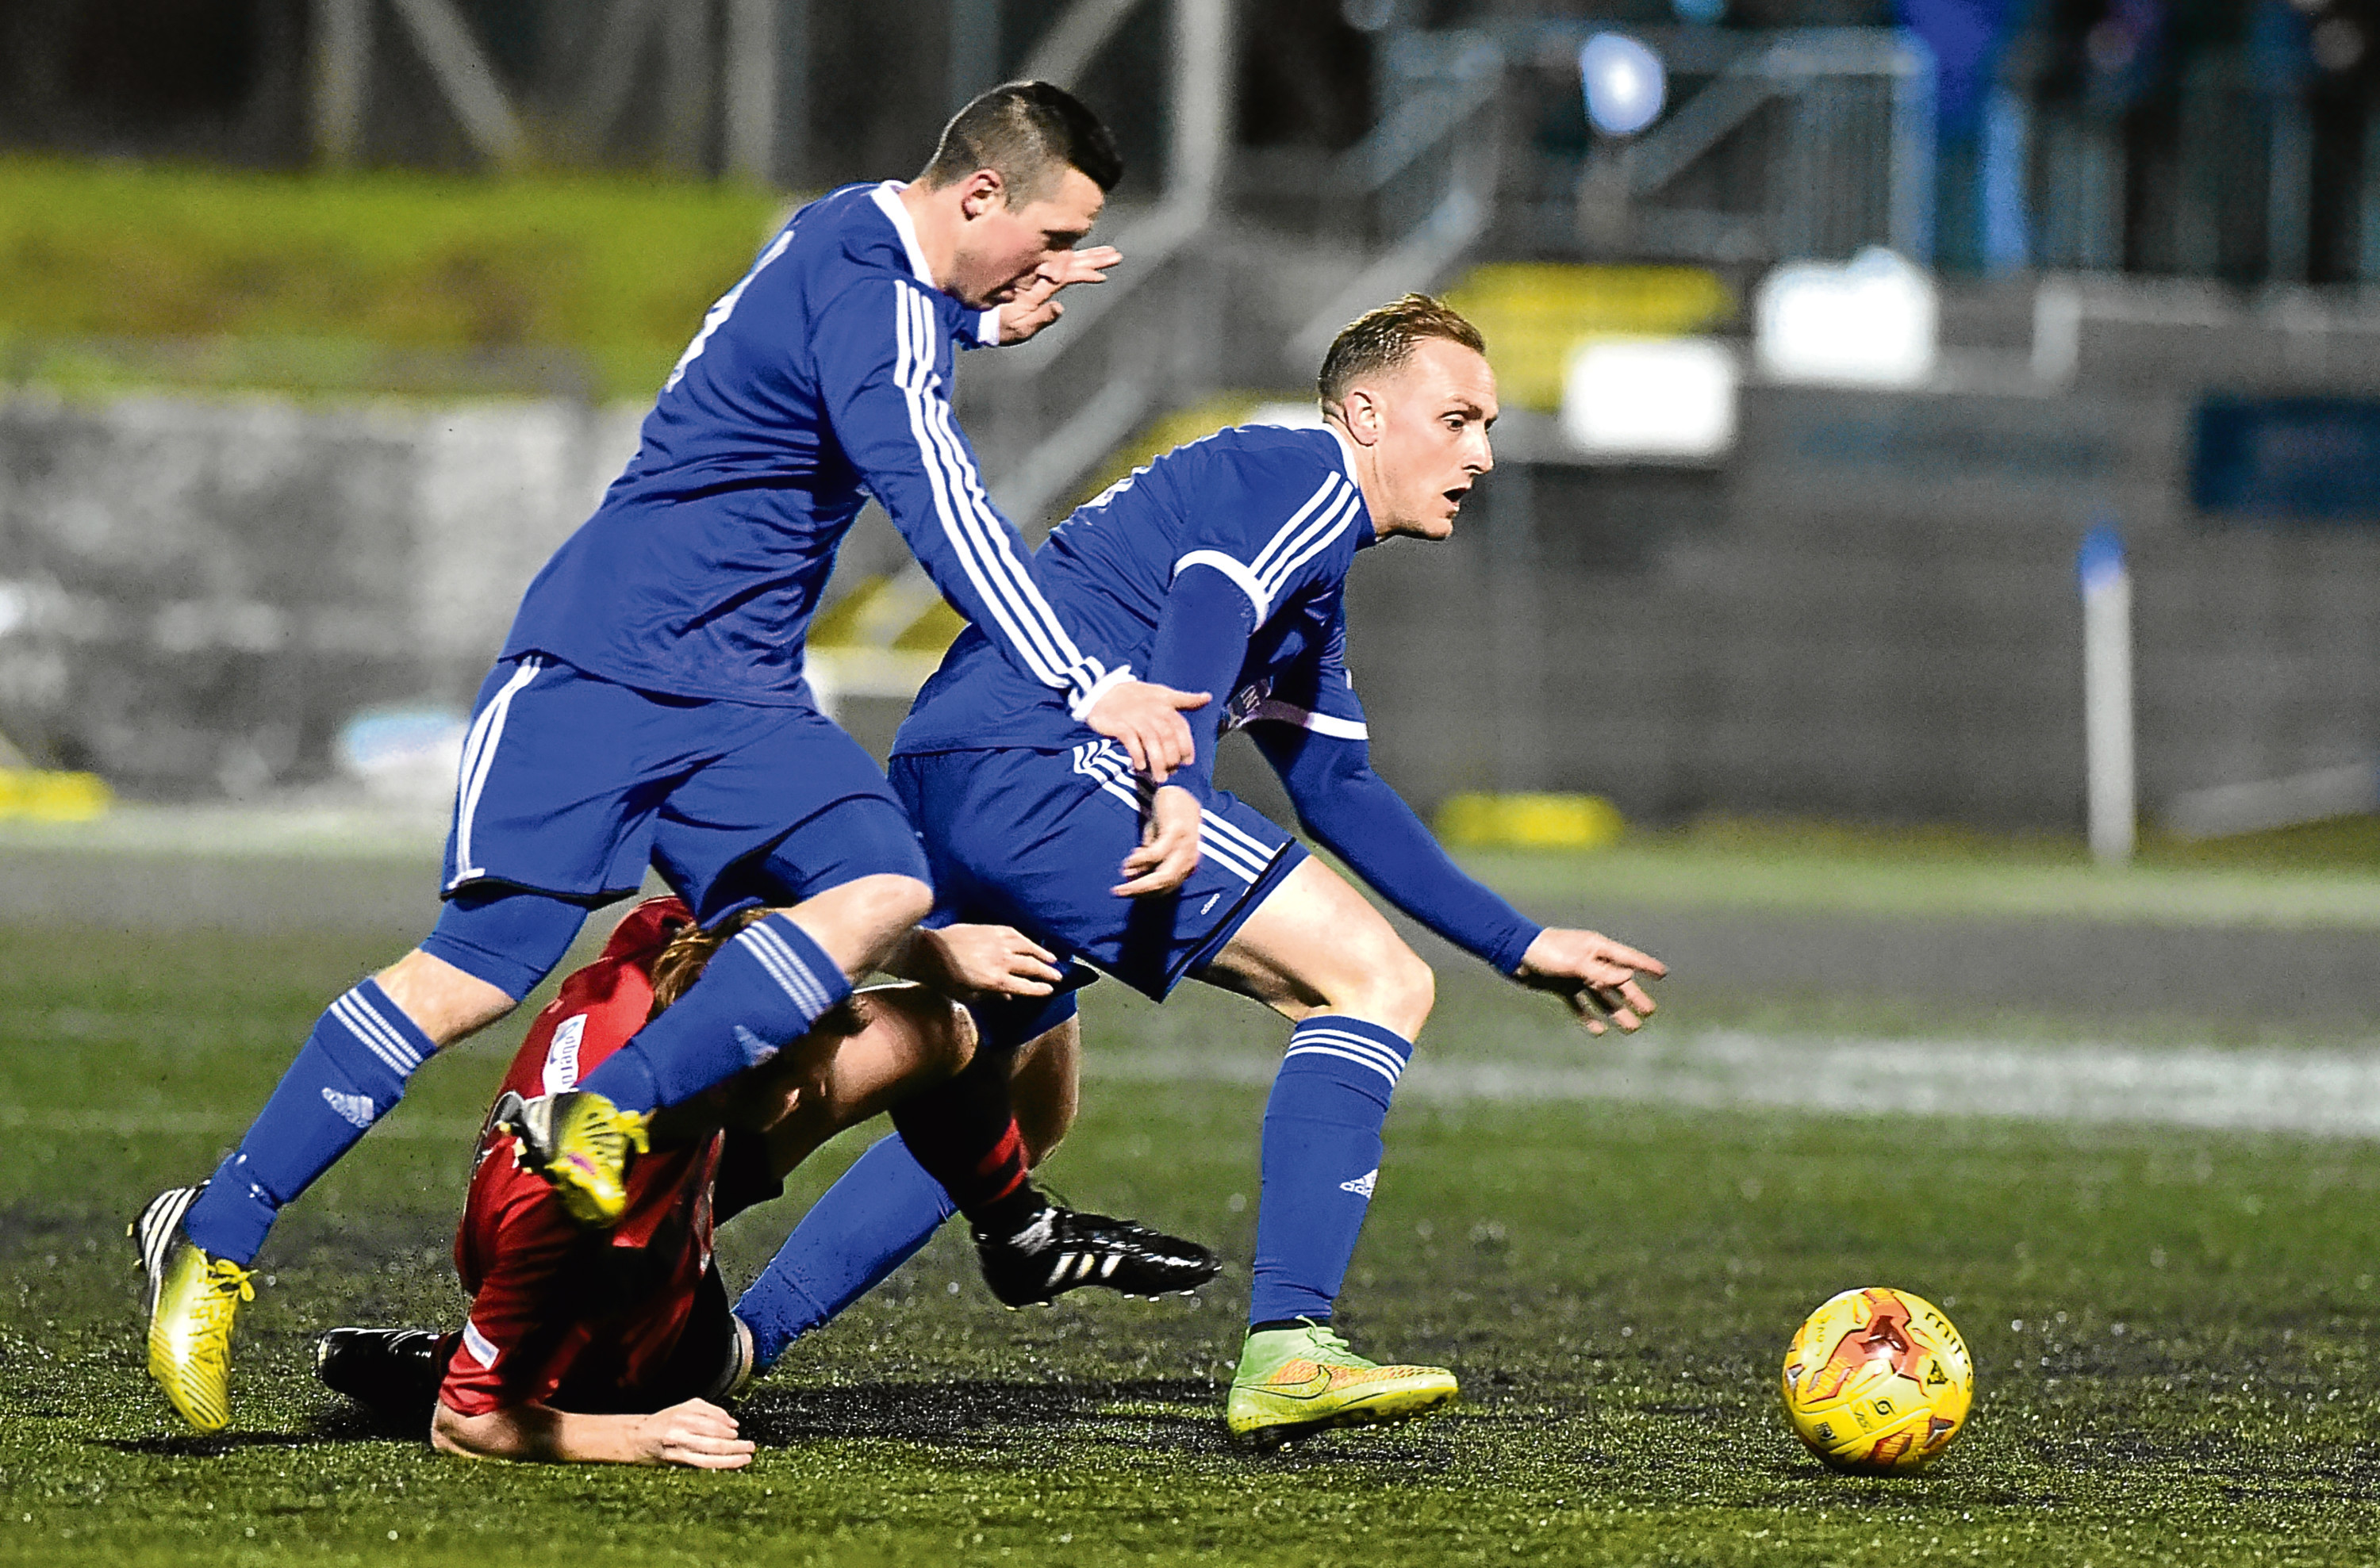 Jonny Smith knows how to win the Highland League, after success with Cove.